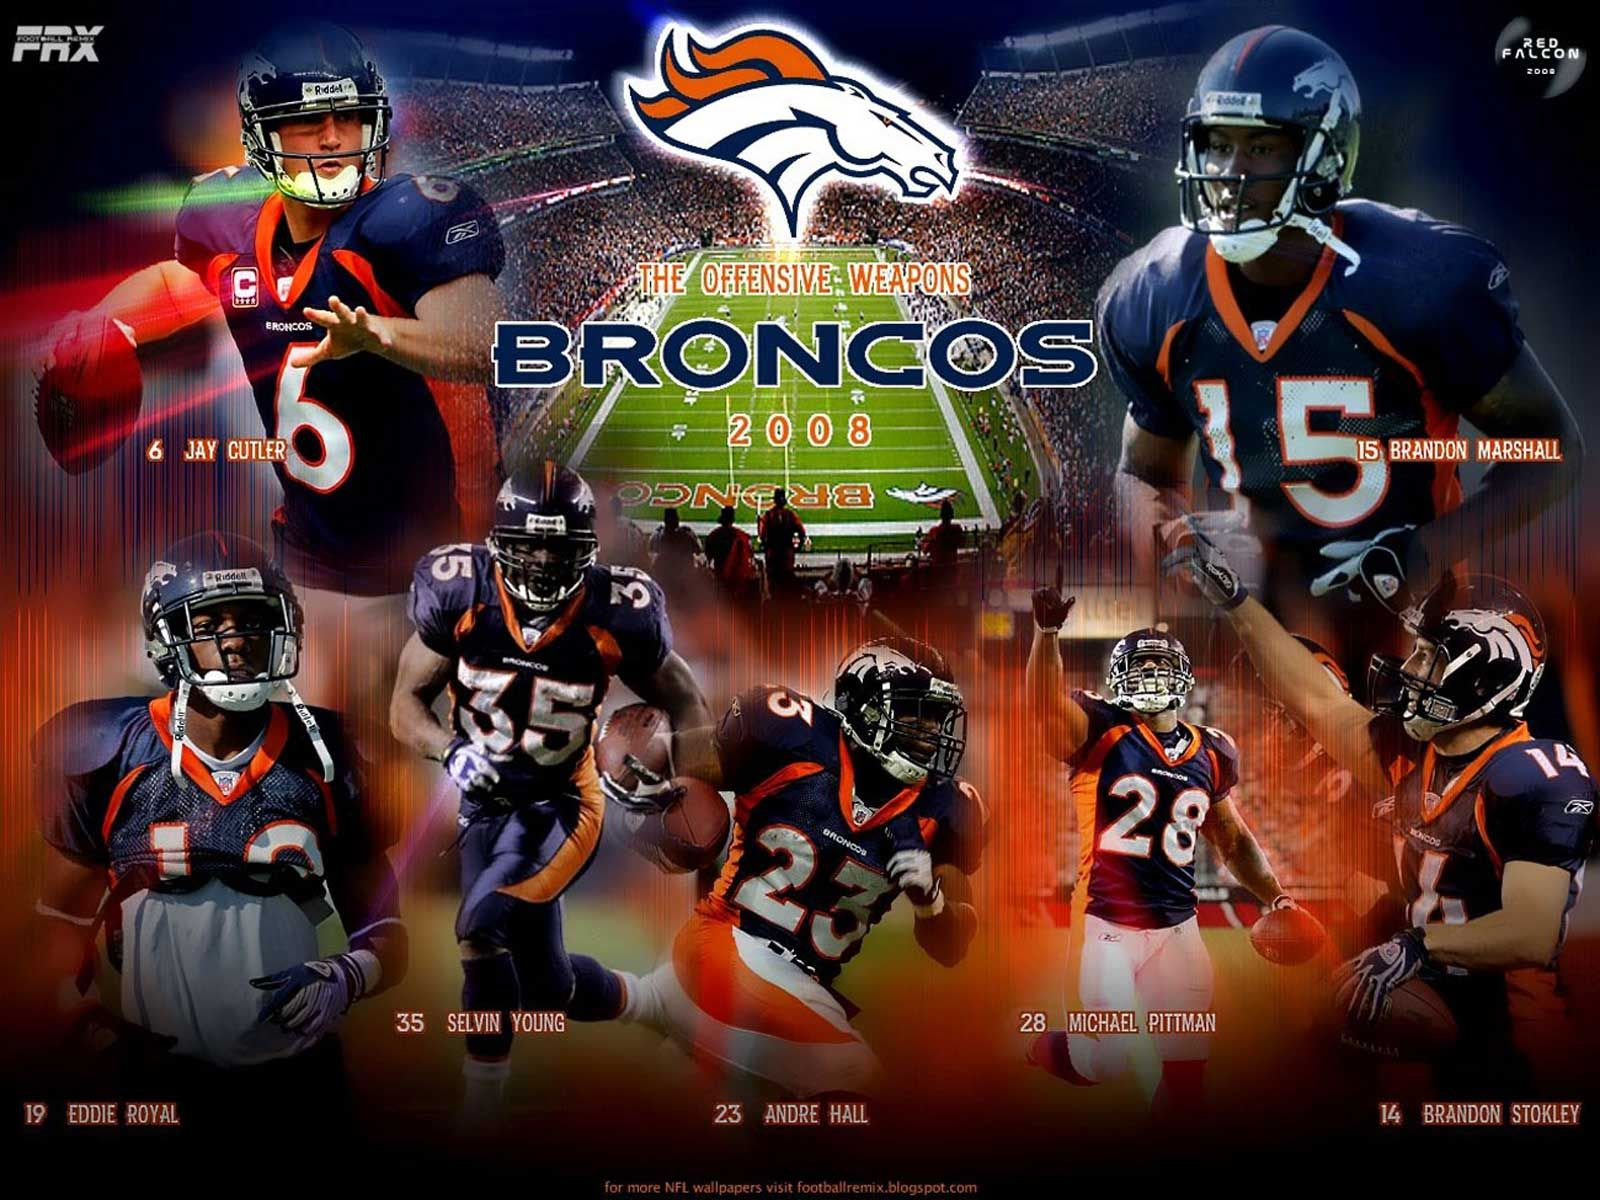 Denver broncos pictures denver broncoswindows 7 denver denver broncoswindows 7 denver broncos themes download theme voltagebd Images